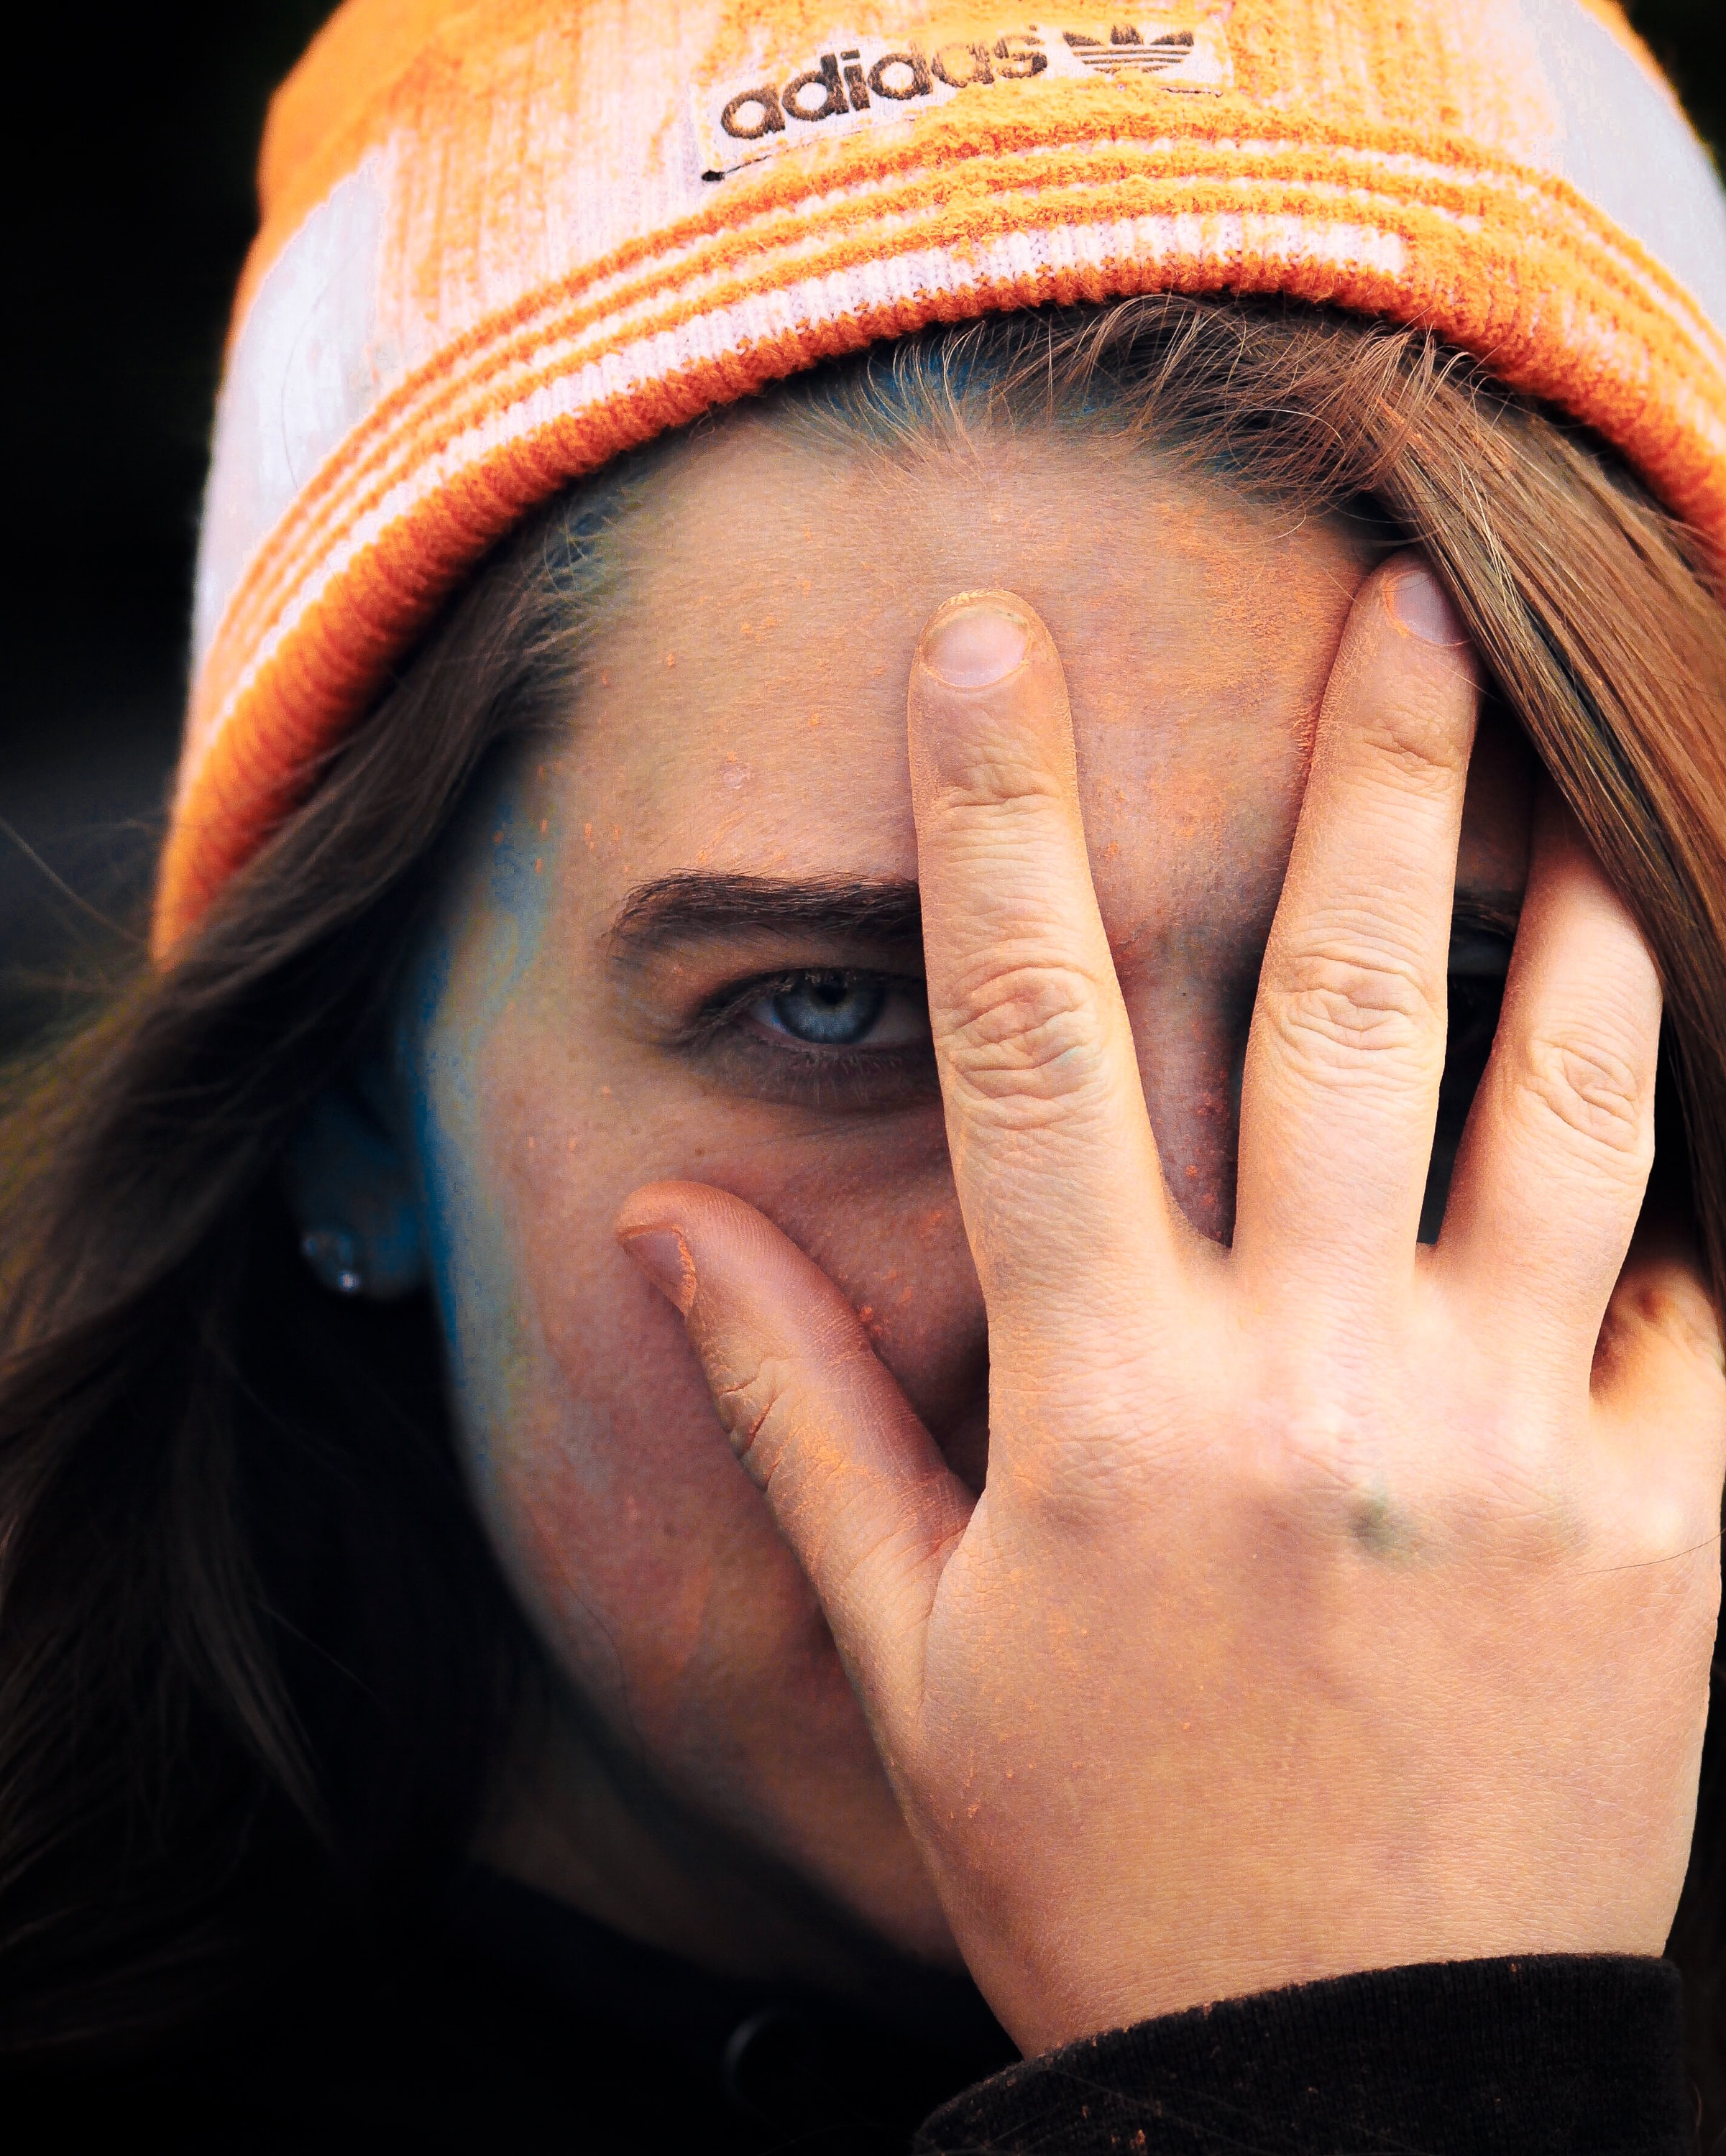 woman wearing adidas cap holding her face